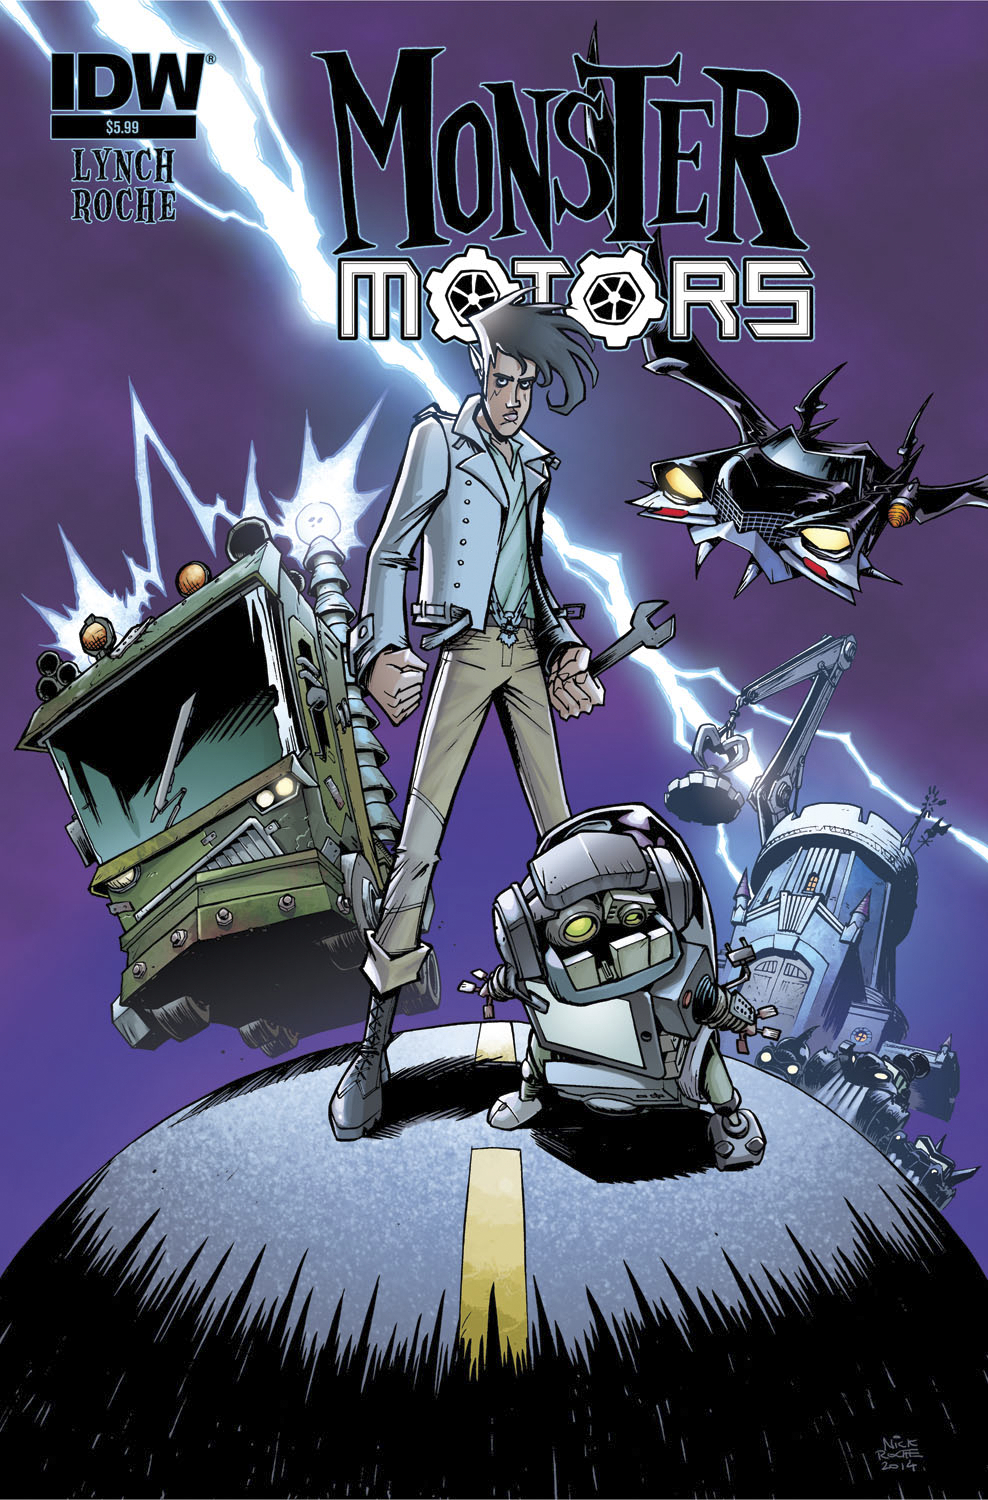 MONSTER MOTORS ONE SHOT